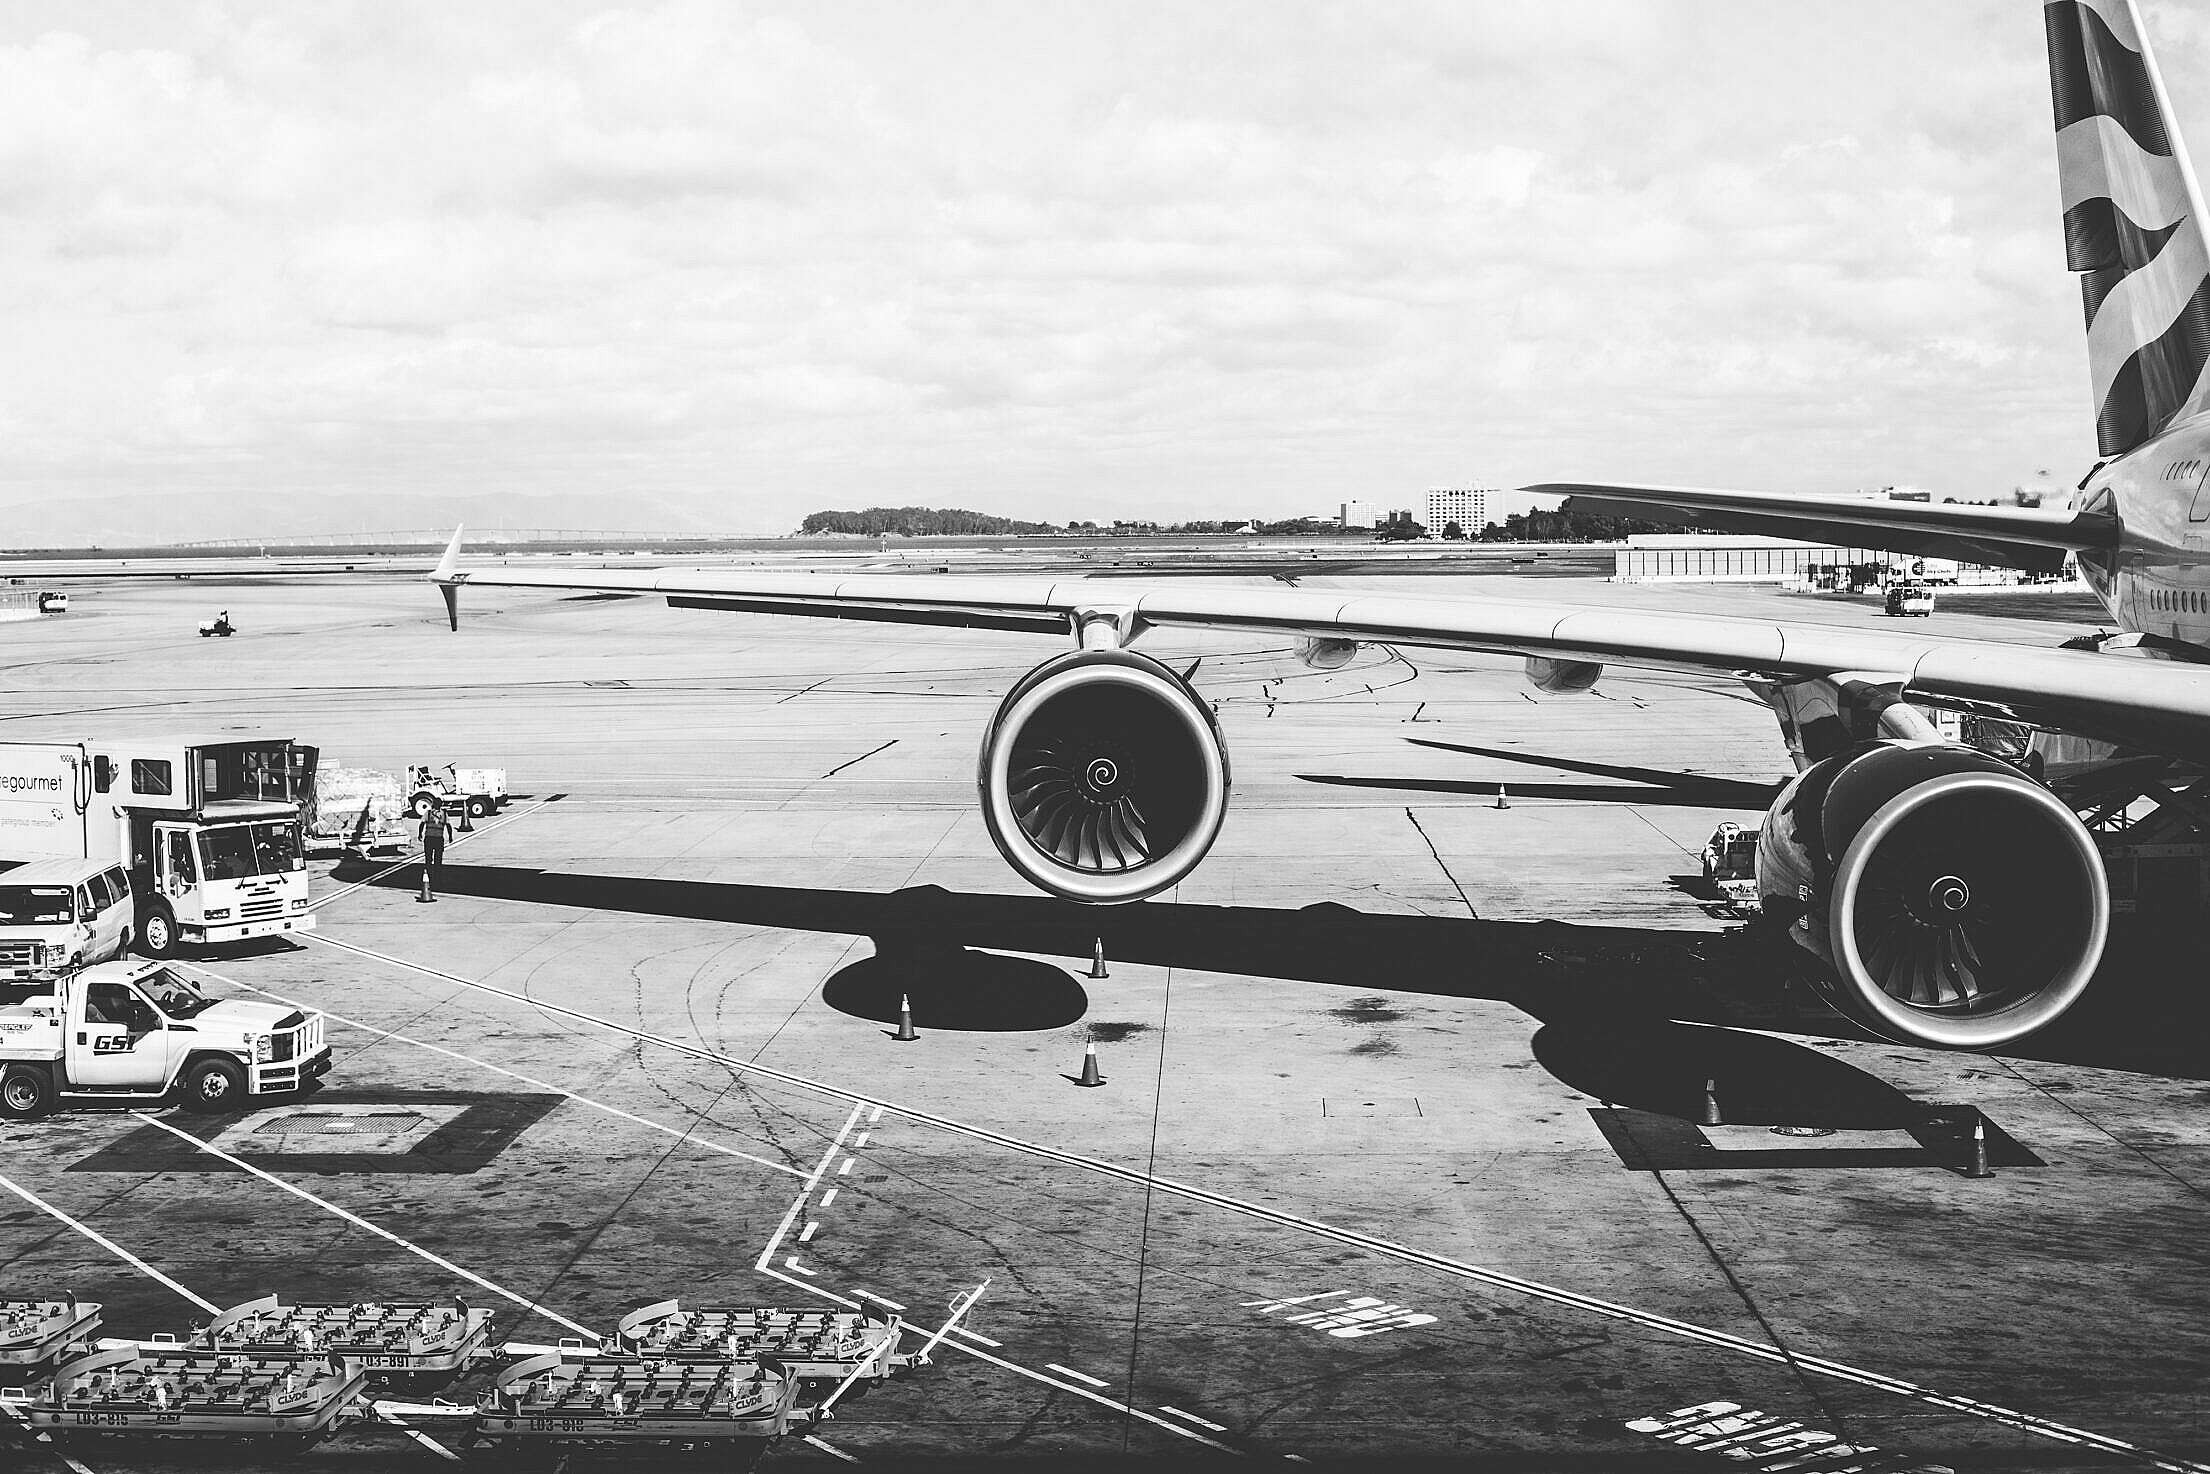 Airplane Wing with Jet Engines at the Airport Free Stock Photo